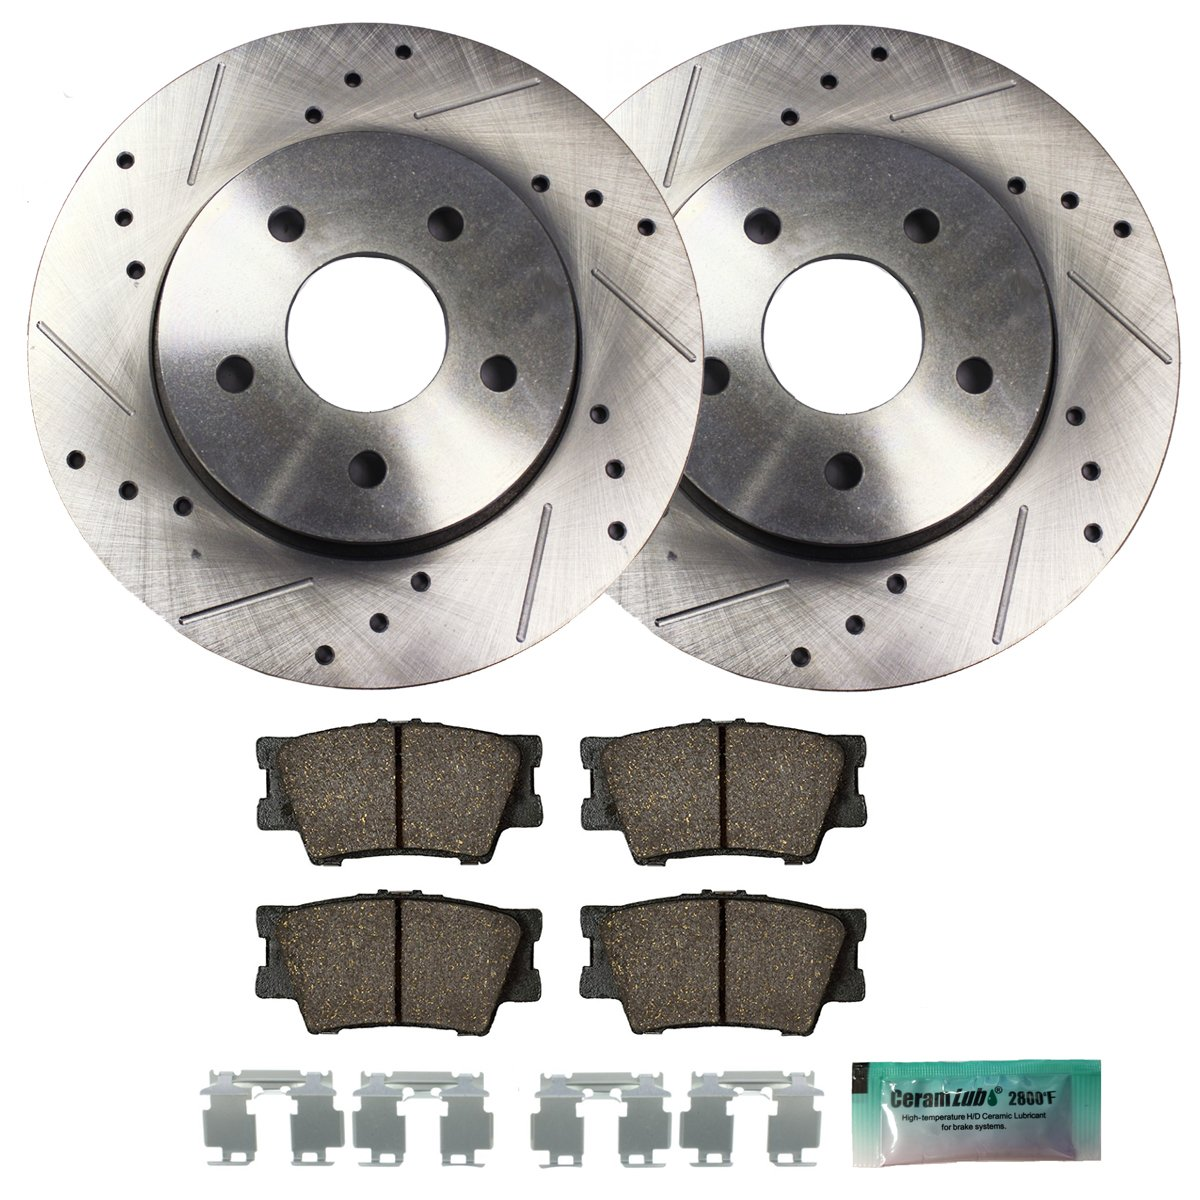 Detroit Axle - Drilled & Slotted Rear Brake Rotors & Brake Pads w/Clips Hardware Kit Performance GRADE for 2007-2012 Lexus ES350 - [2008-2012 Toyota Avalon] - 2007-2011 Toyota Camry